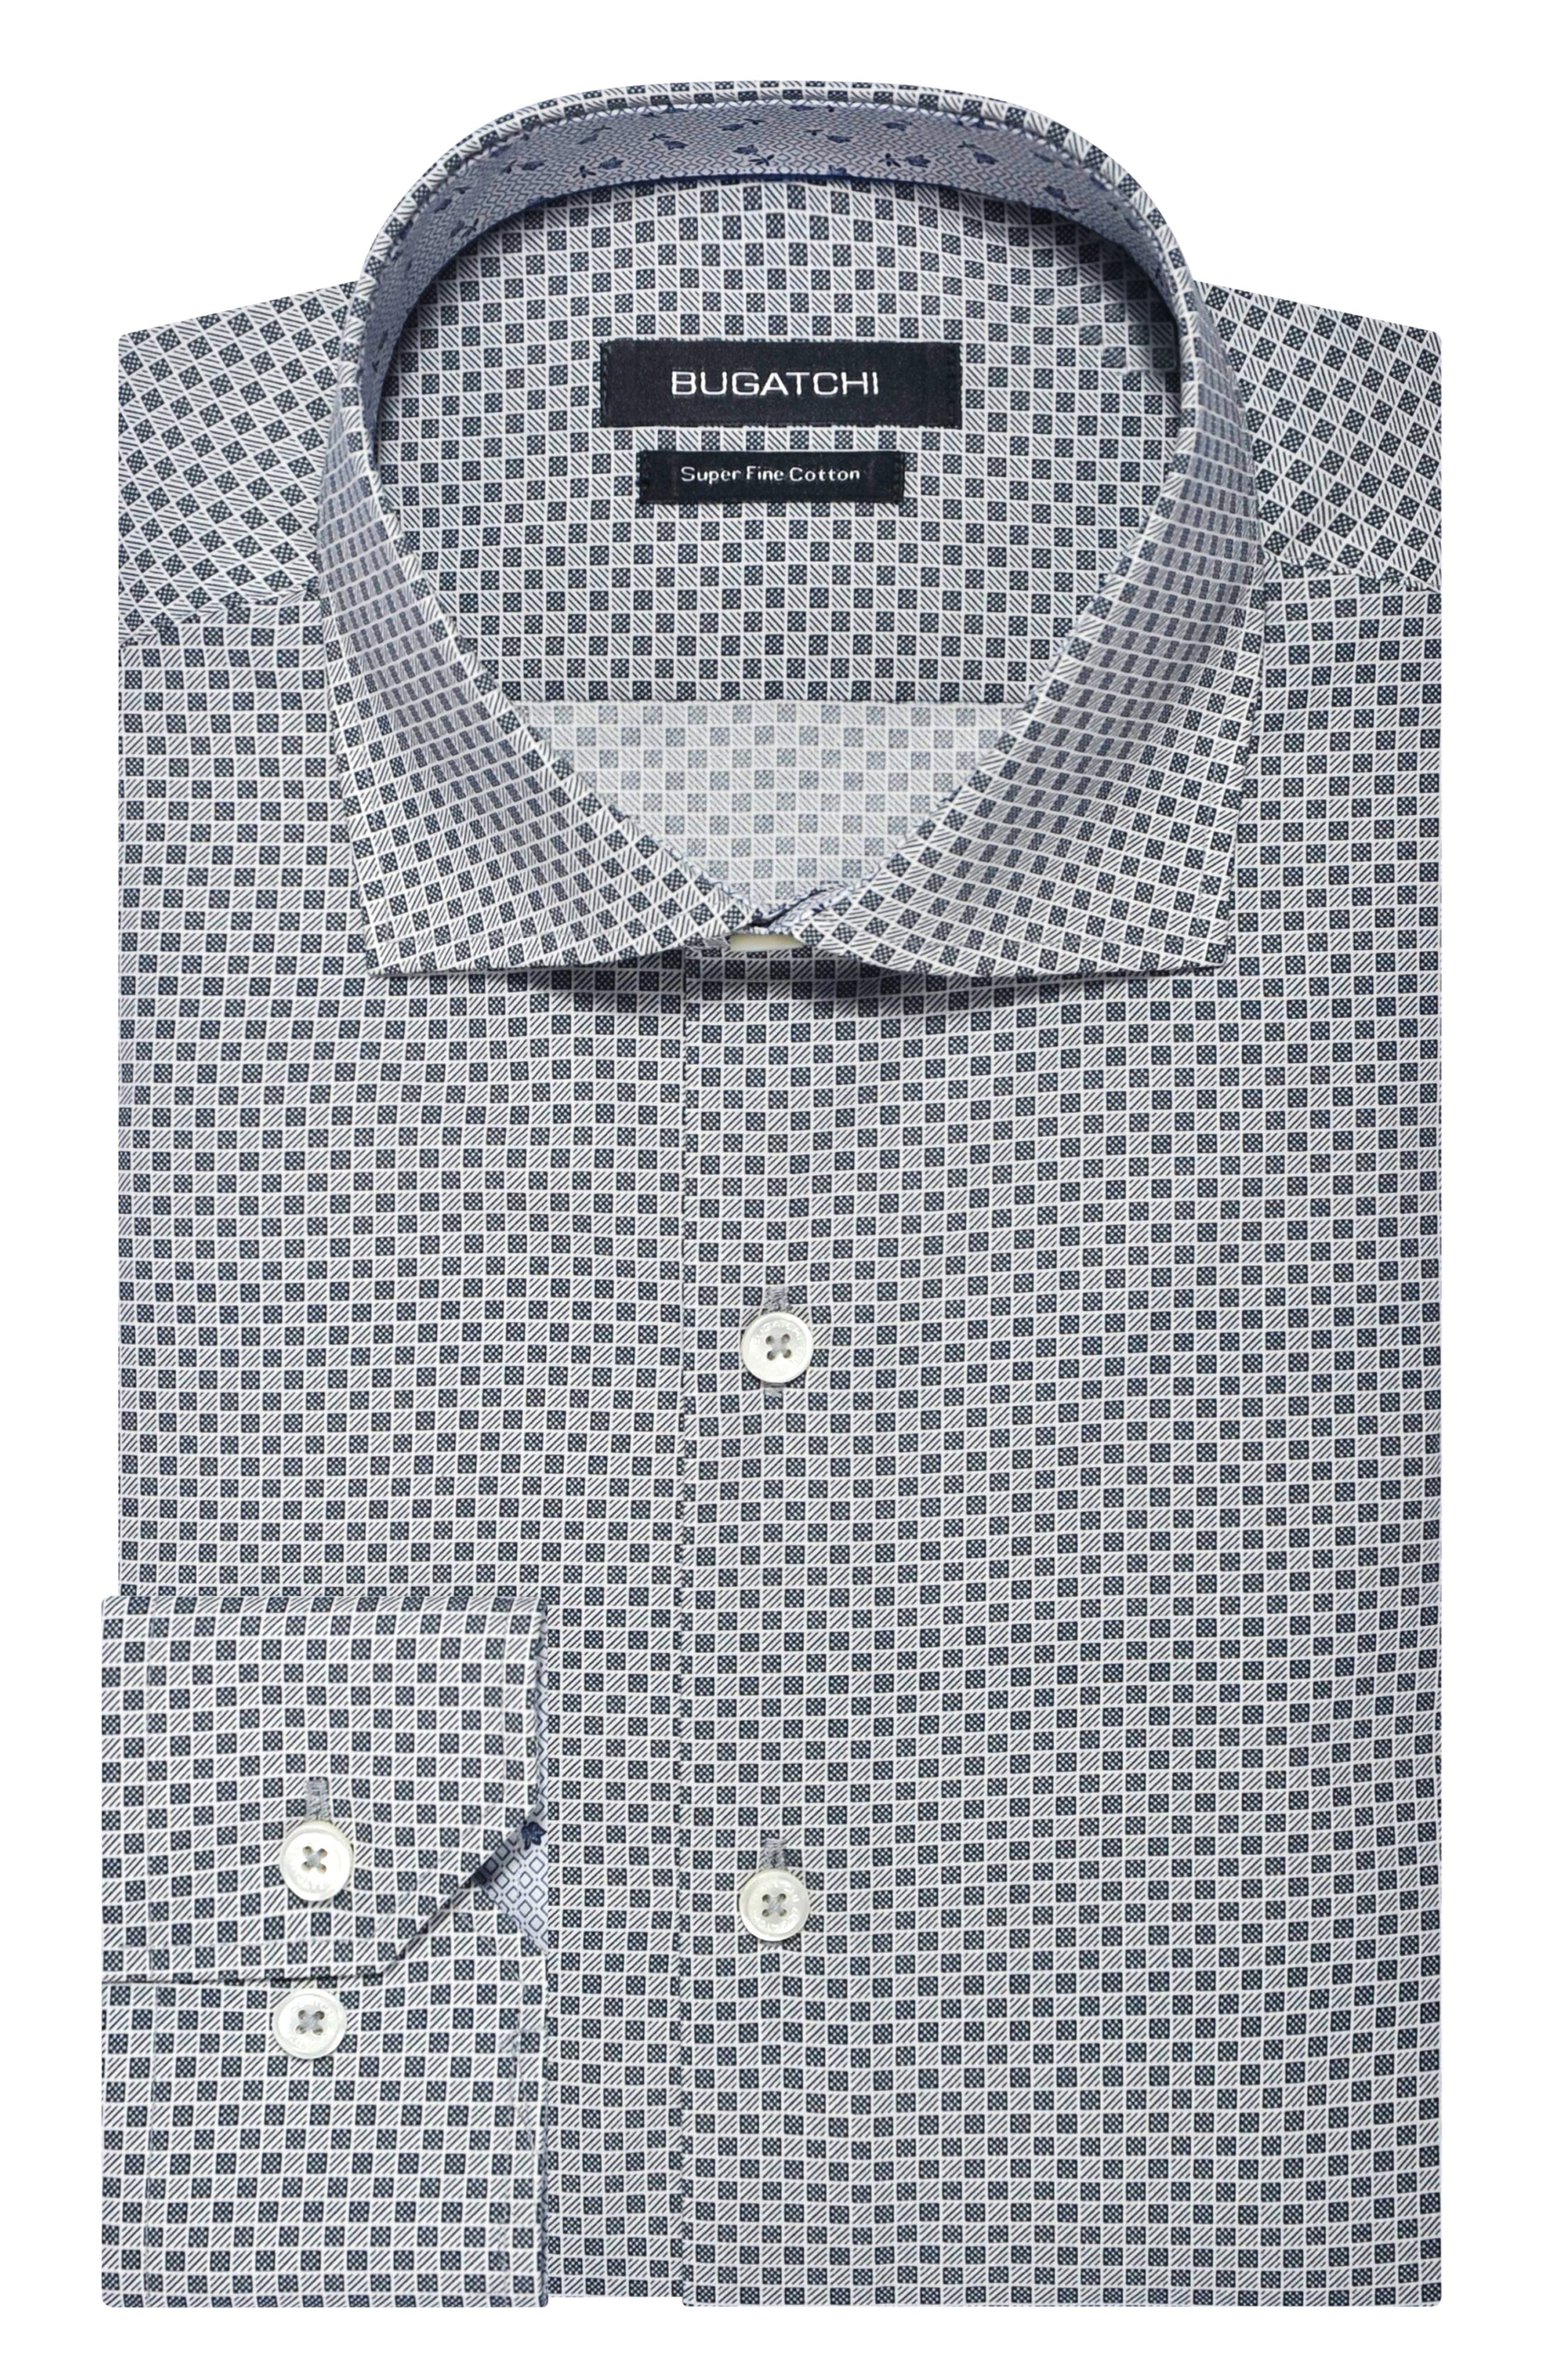 Handsome checks define a versatile dress shirt featuring charming contrast trim lining the spread collar and mitered, adjustable button cuffs. Style Name: Bugatchi Trim Fit Check Dress Shirt. Style Number: 5946122. Available in stores.